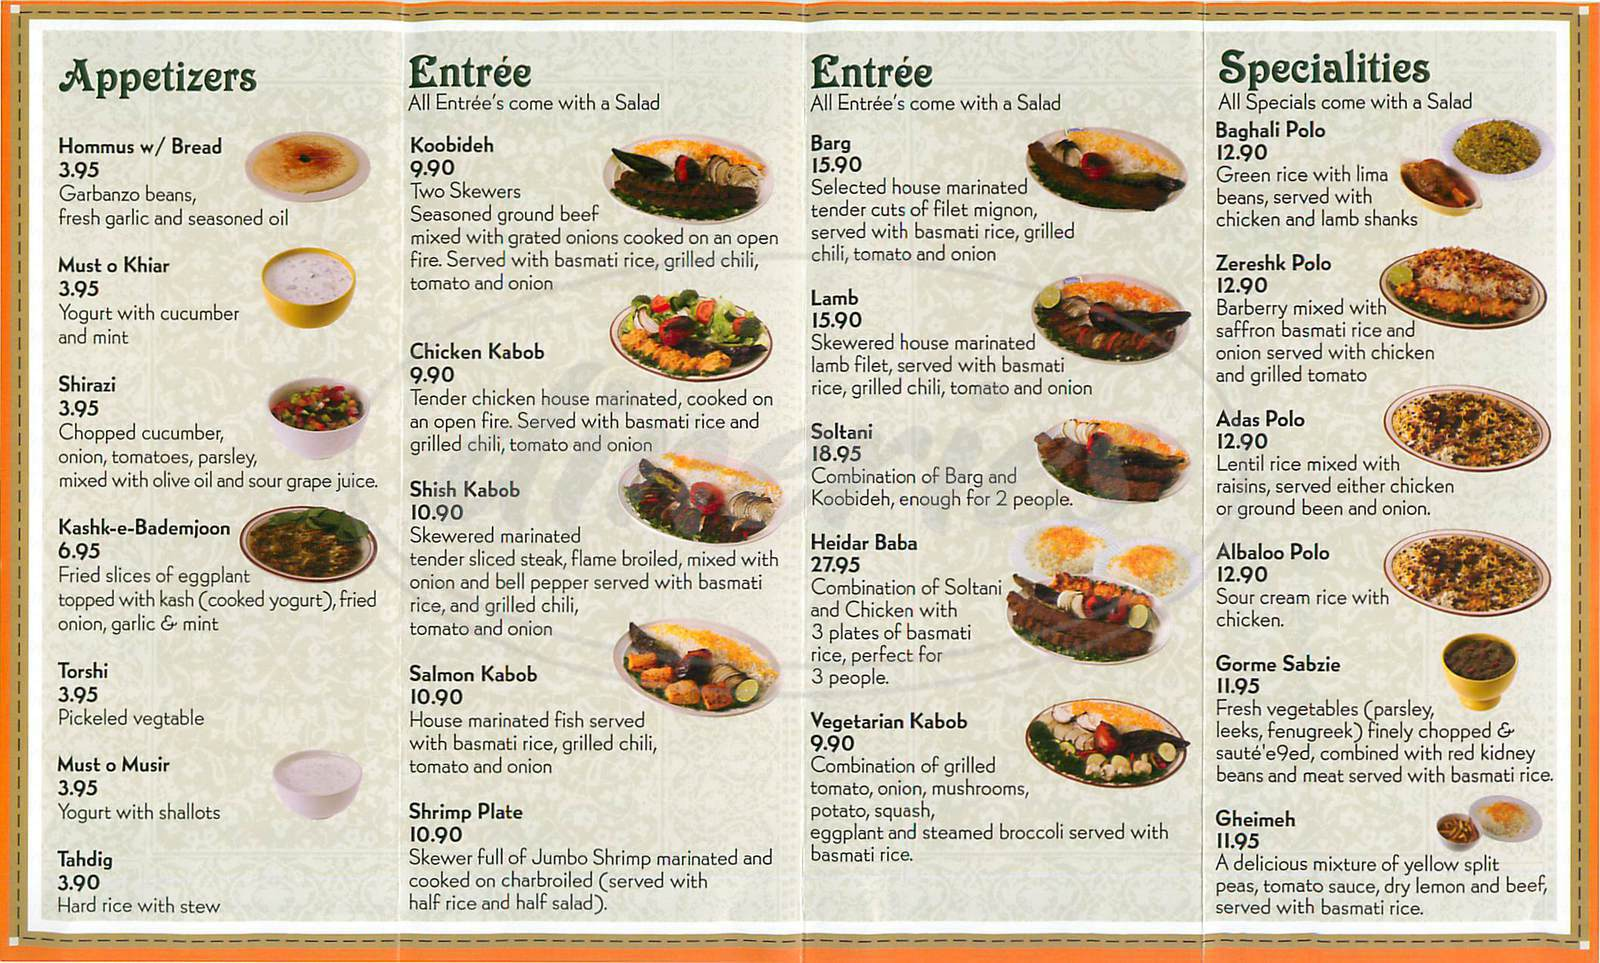 menu for Heidar Baba